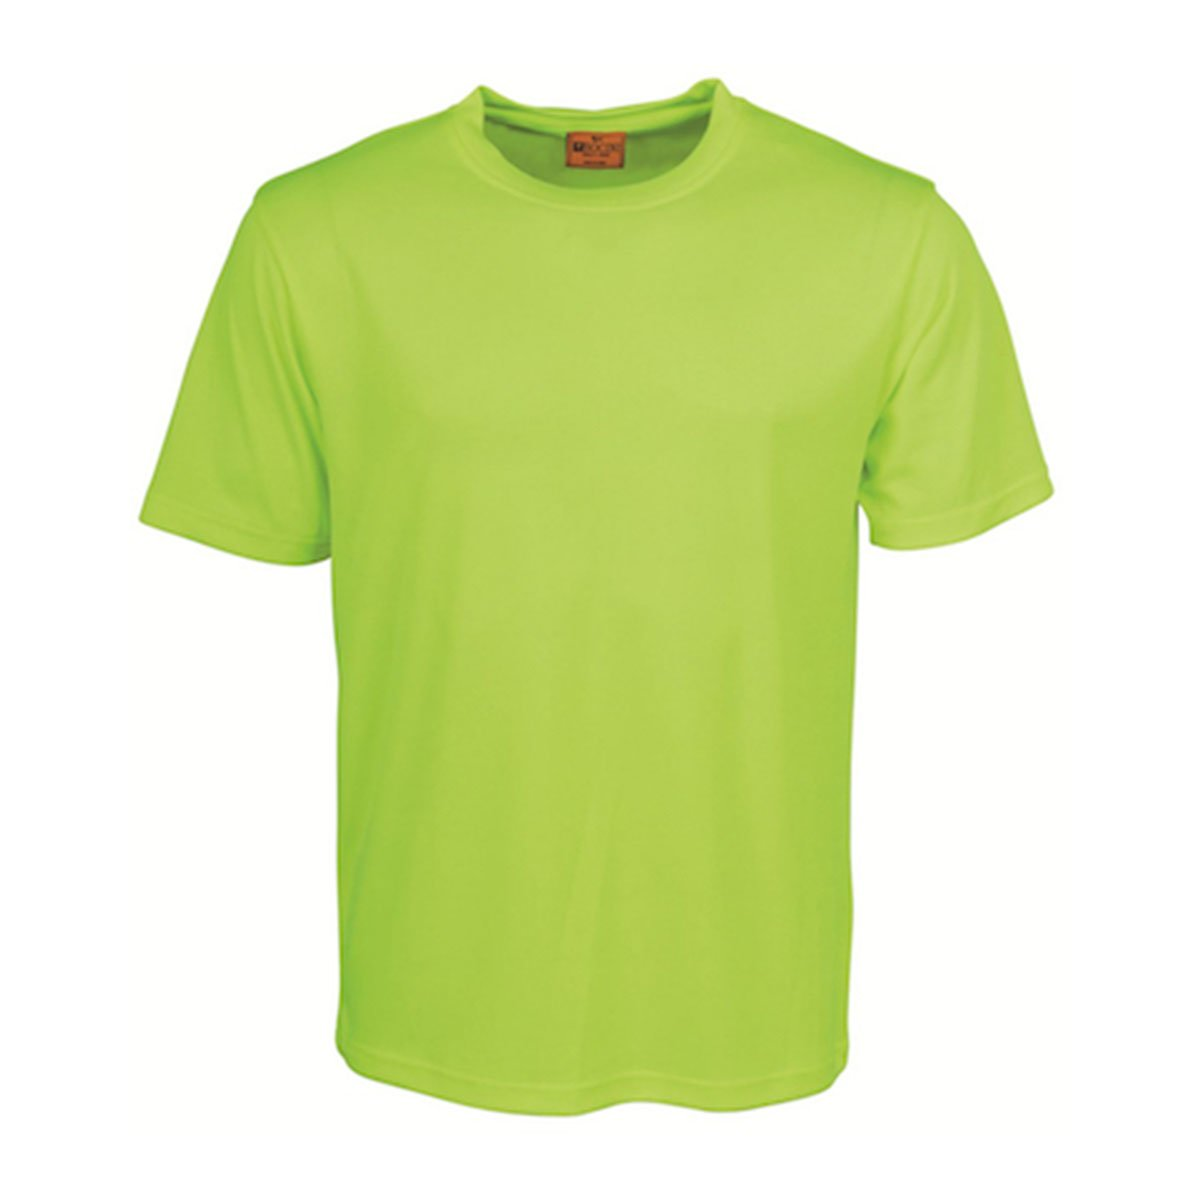 HI-VIS ROUND NECK TEE SHIRT-Lime